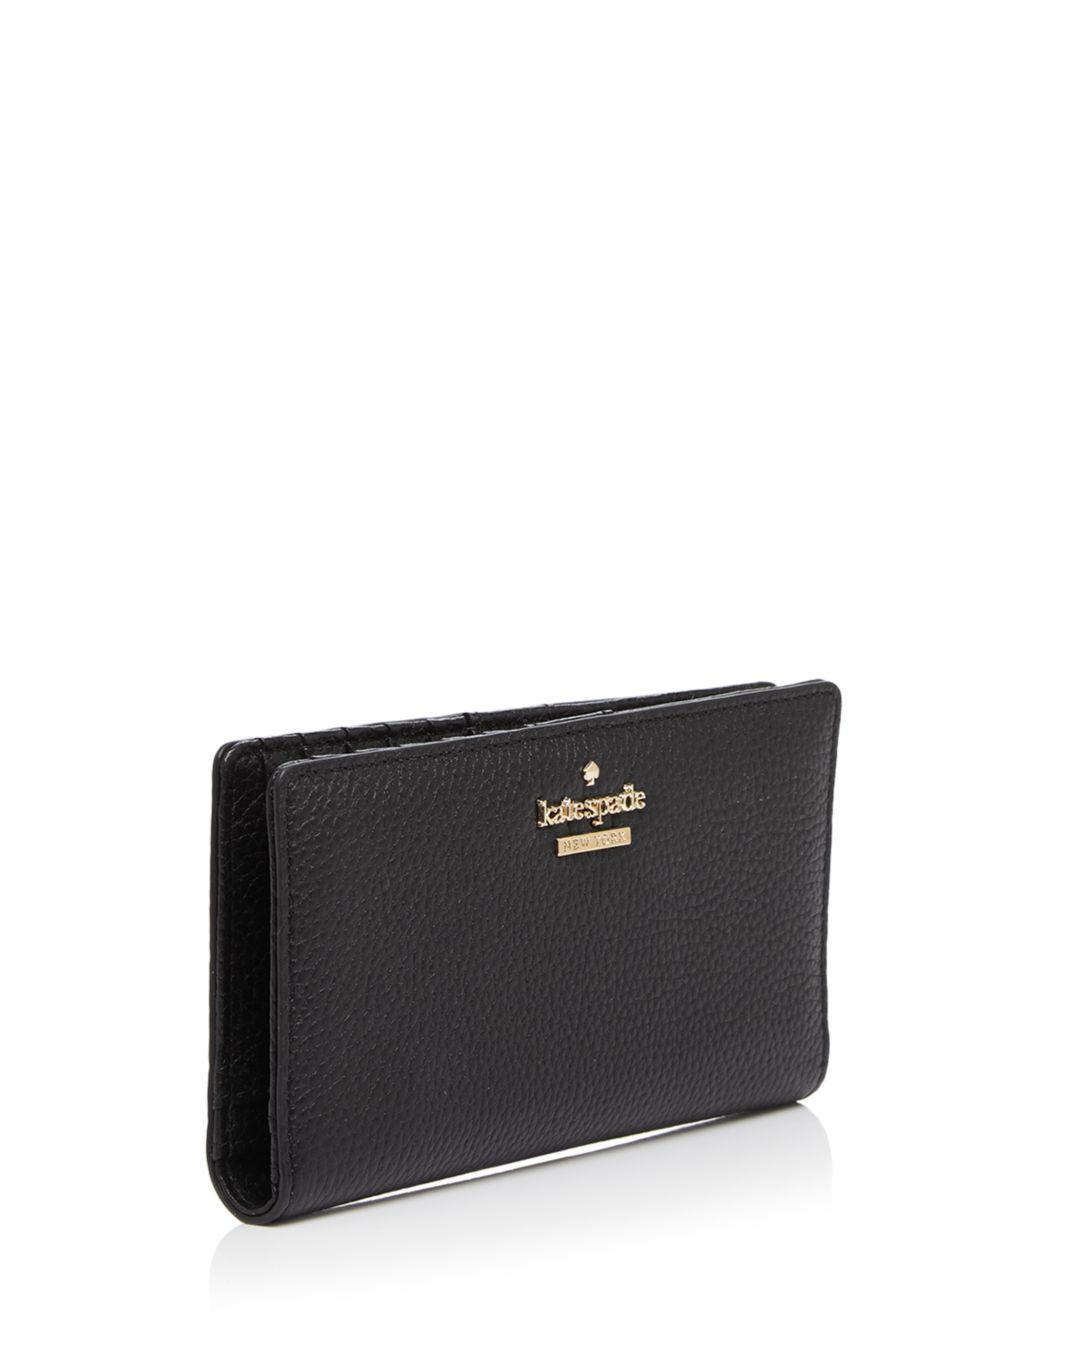 ce31868abb36 Kate Spade - Black Jackson Street Stacy Pebbled Leather Continental Wallet  - Lyst